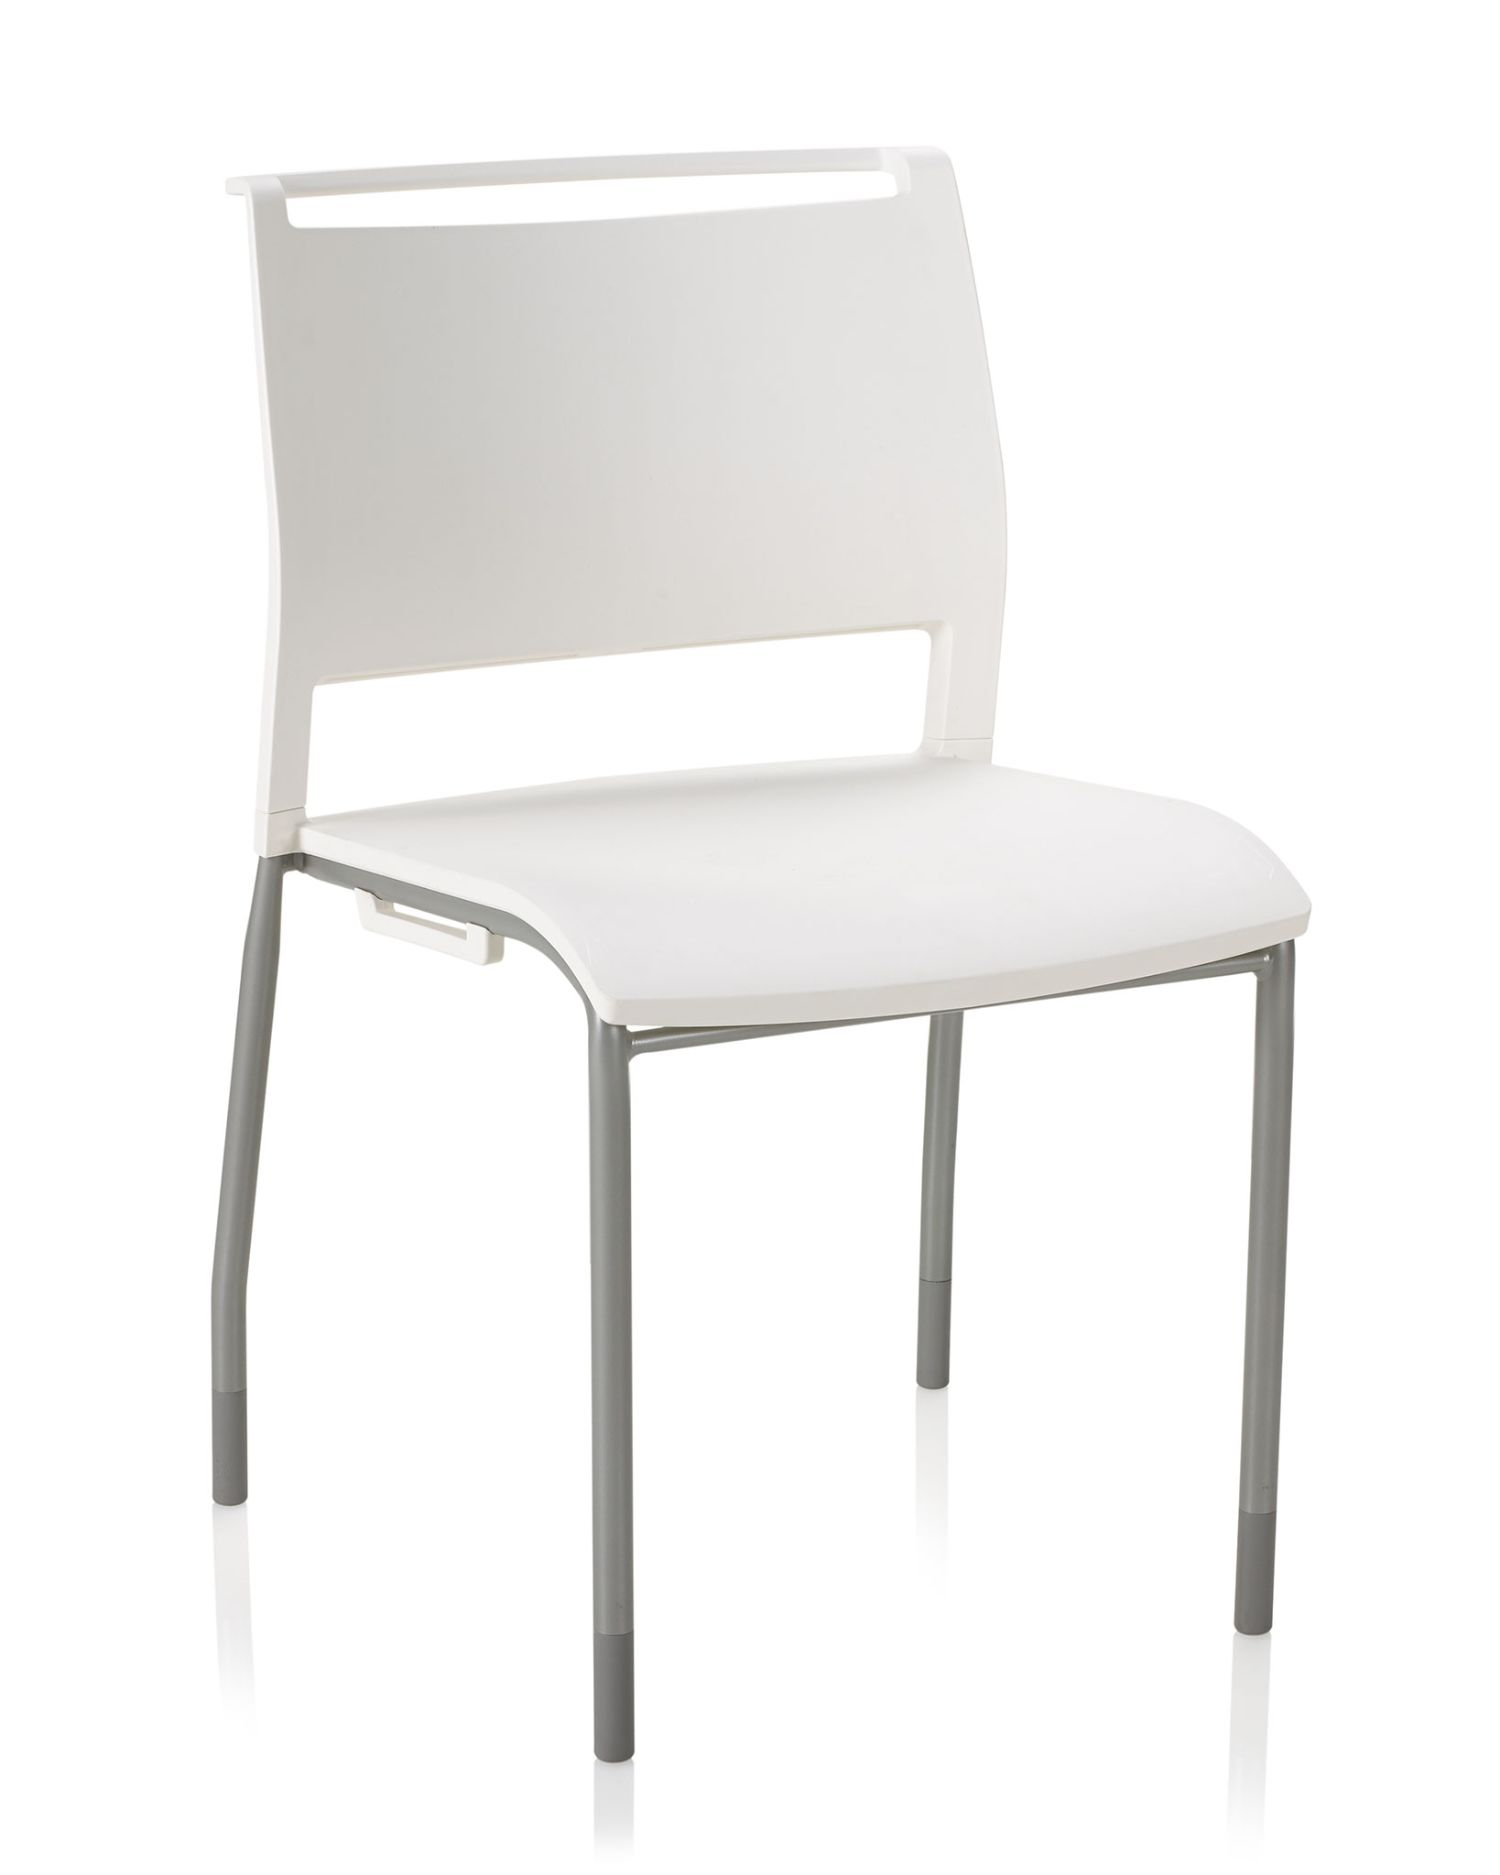 opt4 stacking chair in white